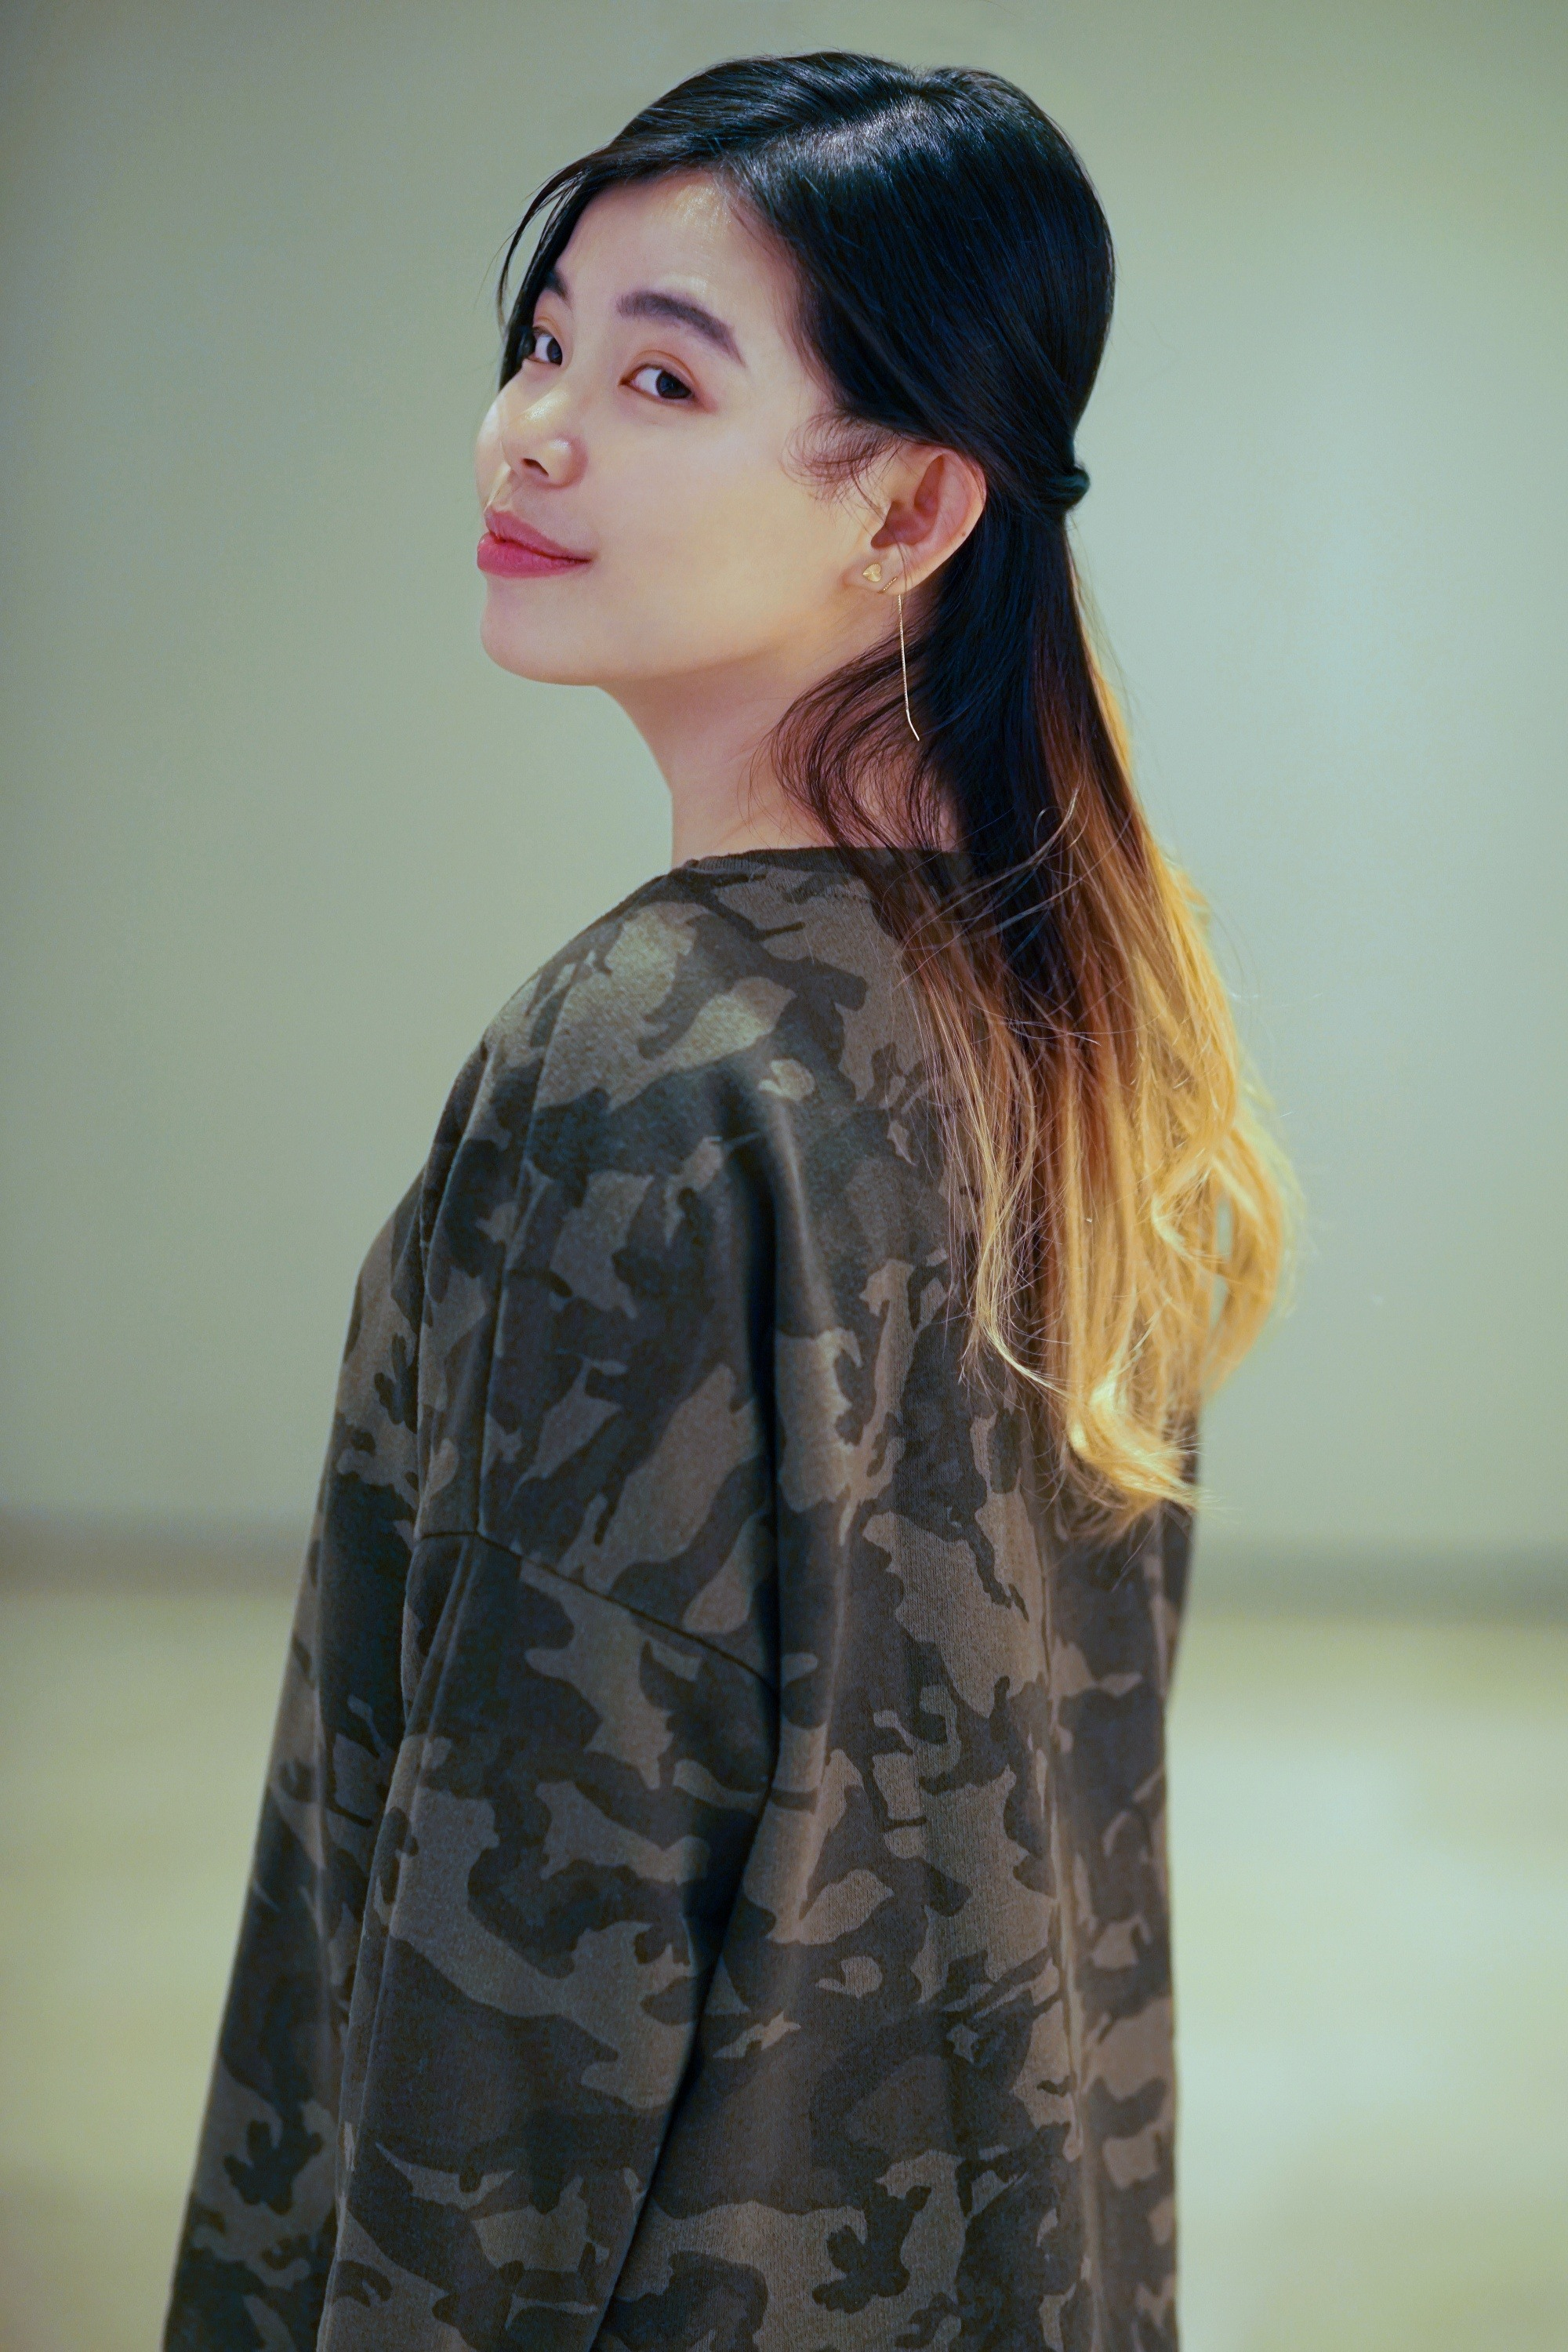 Asian woman with long light brown ombre hair